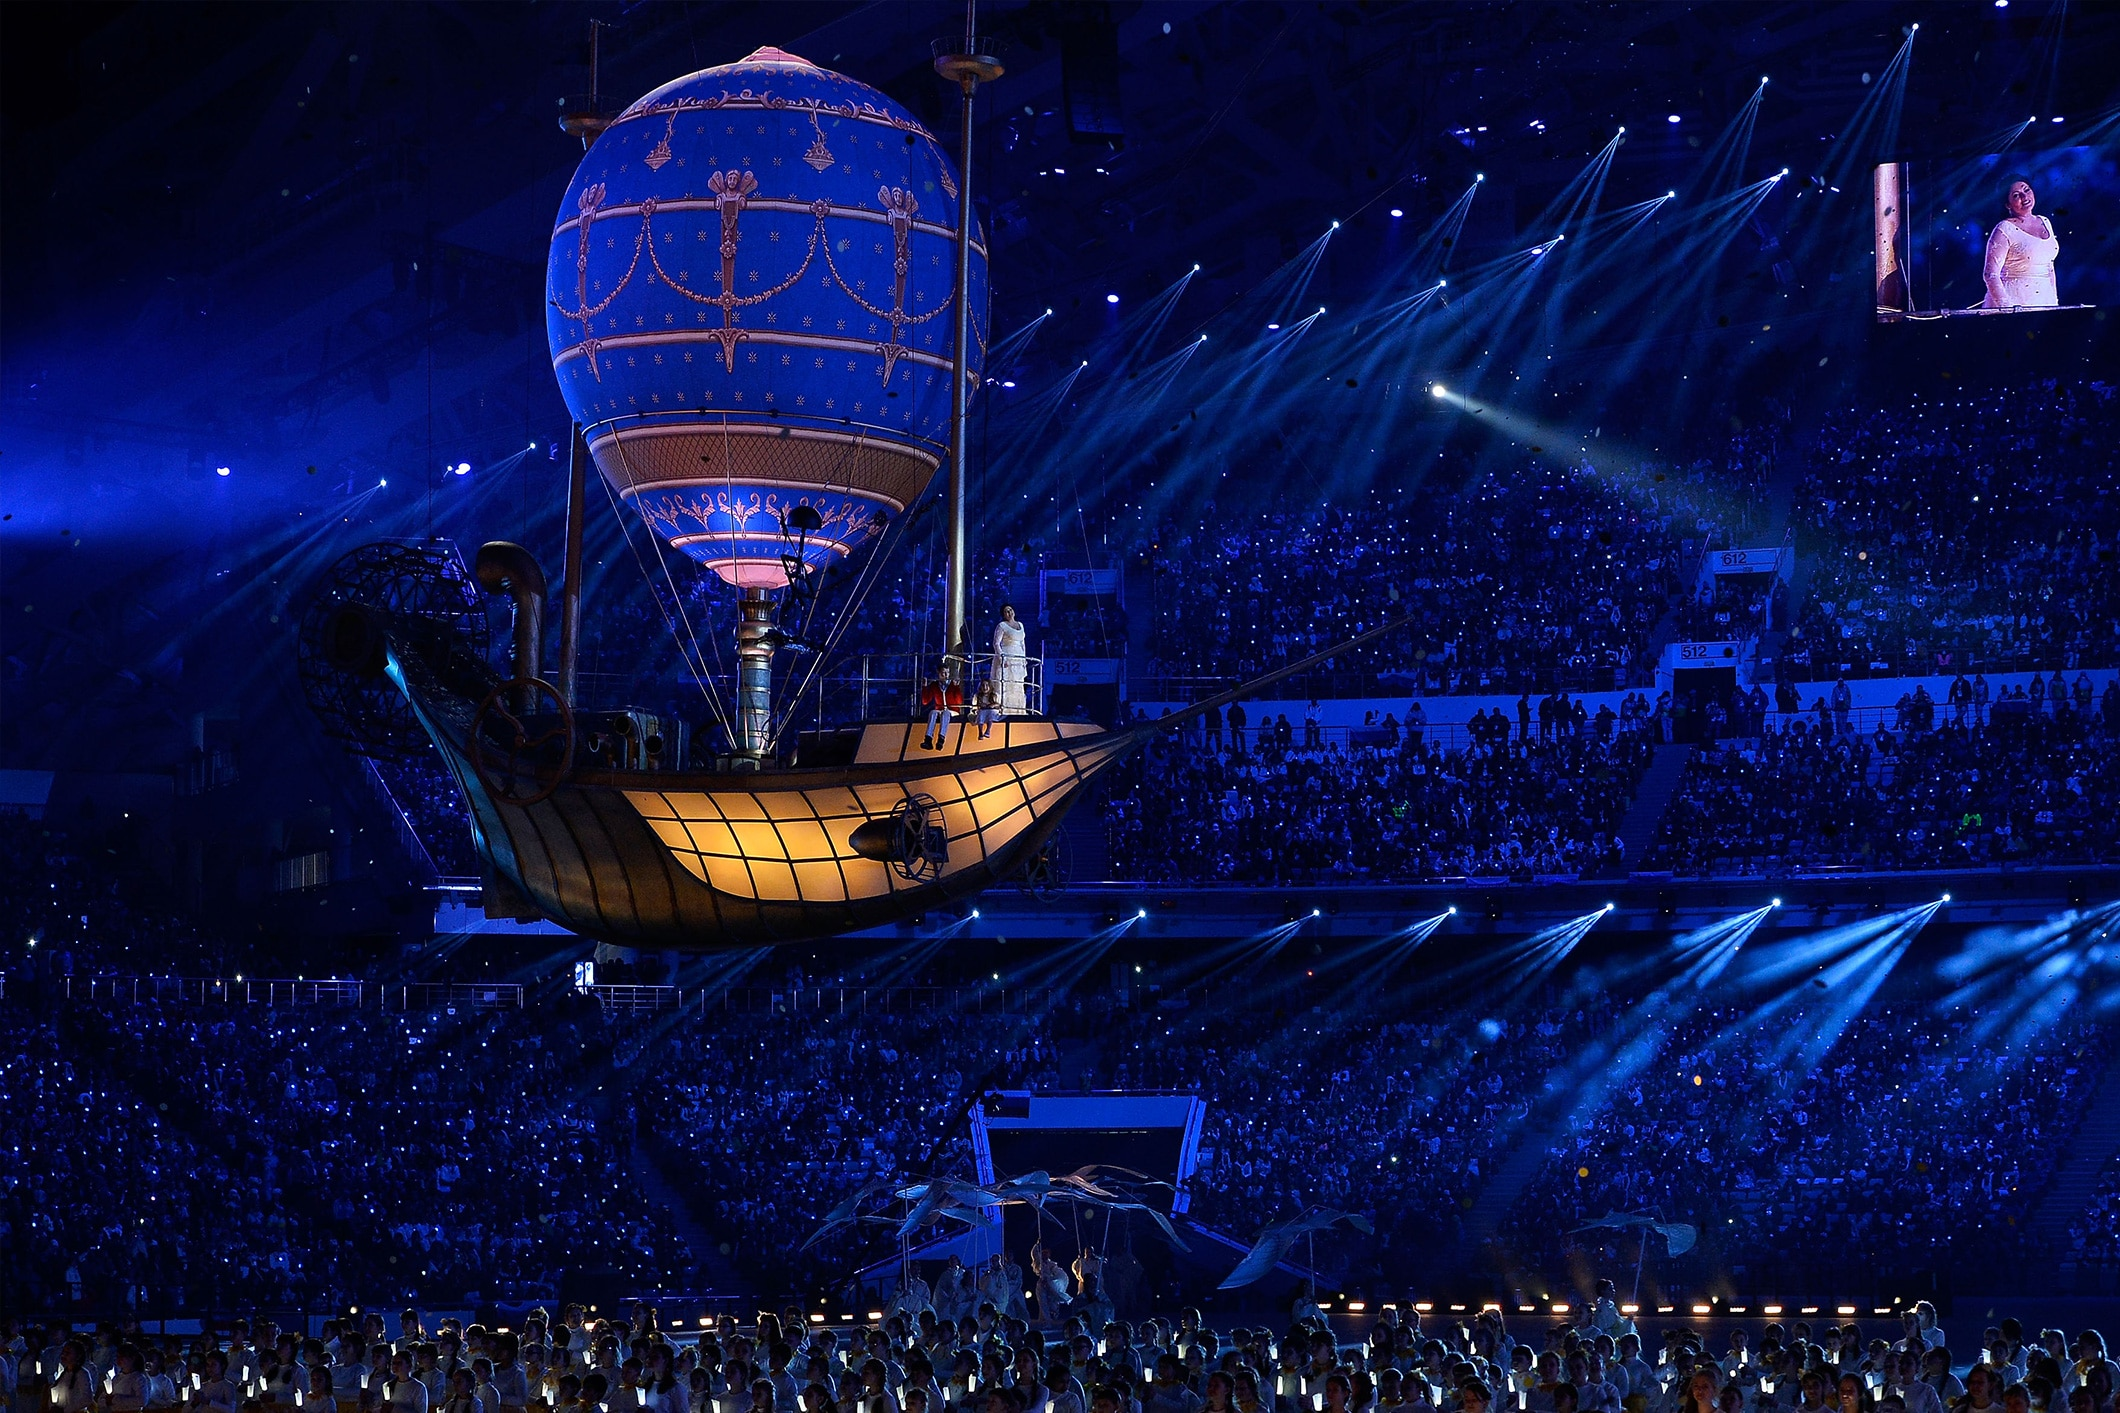 Closing Ceremony at Sochi 2014